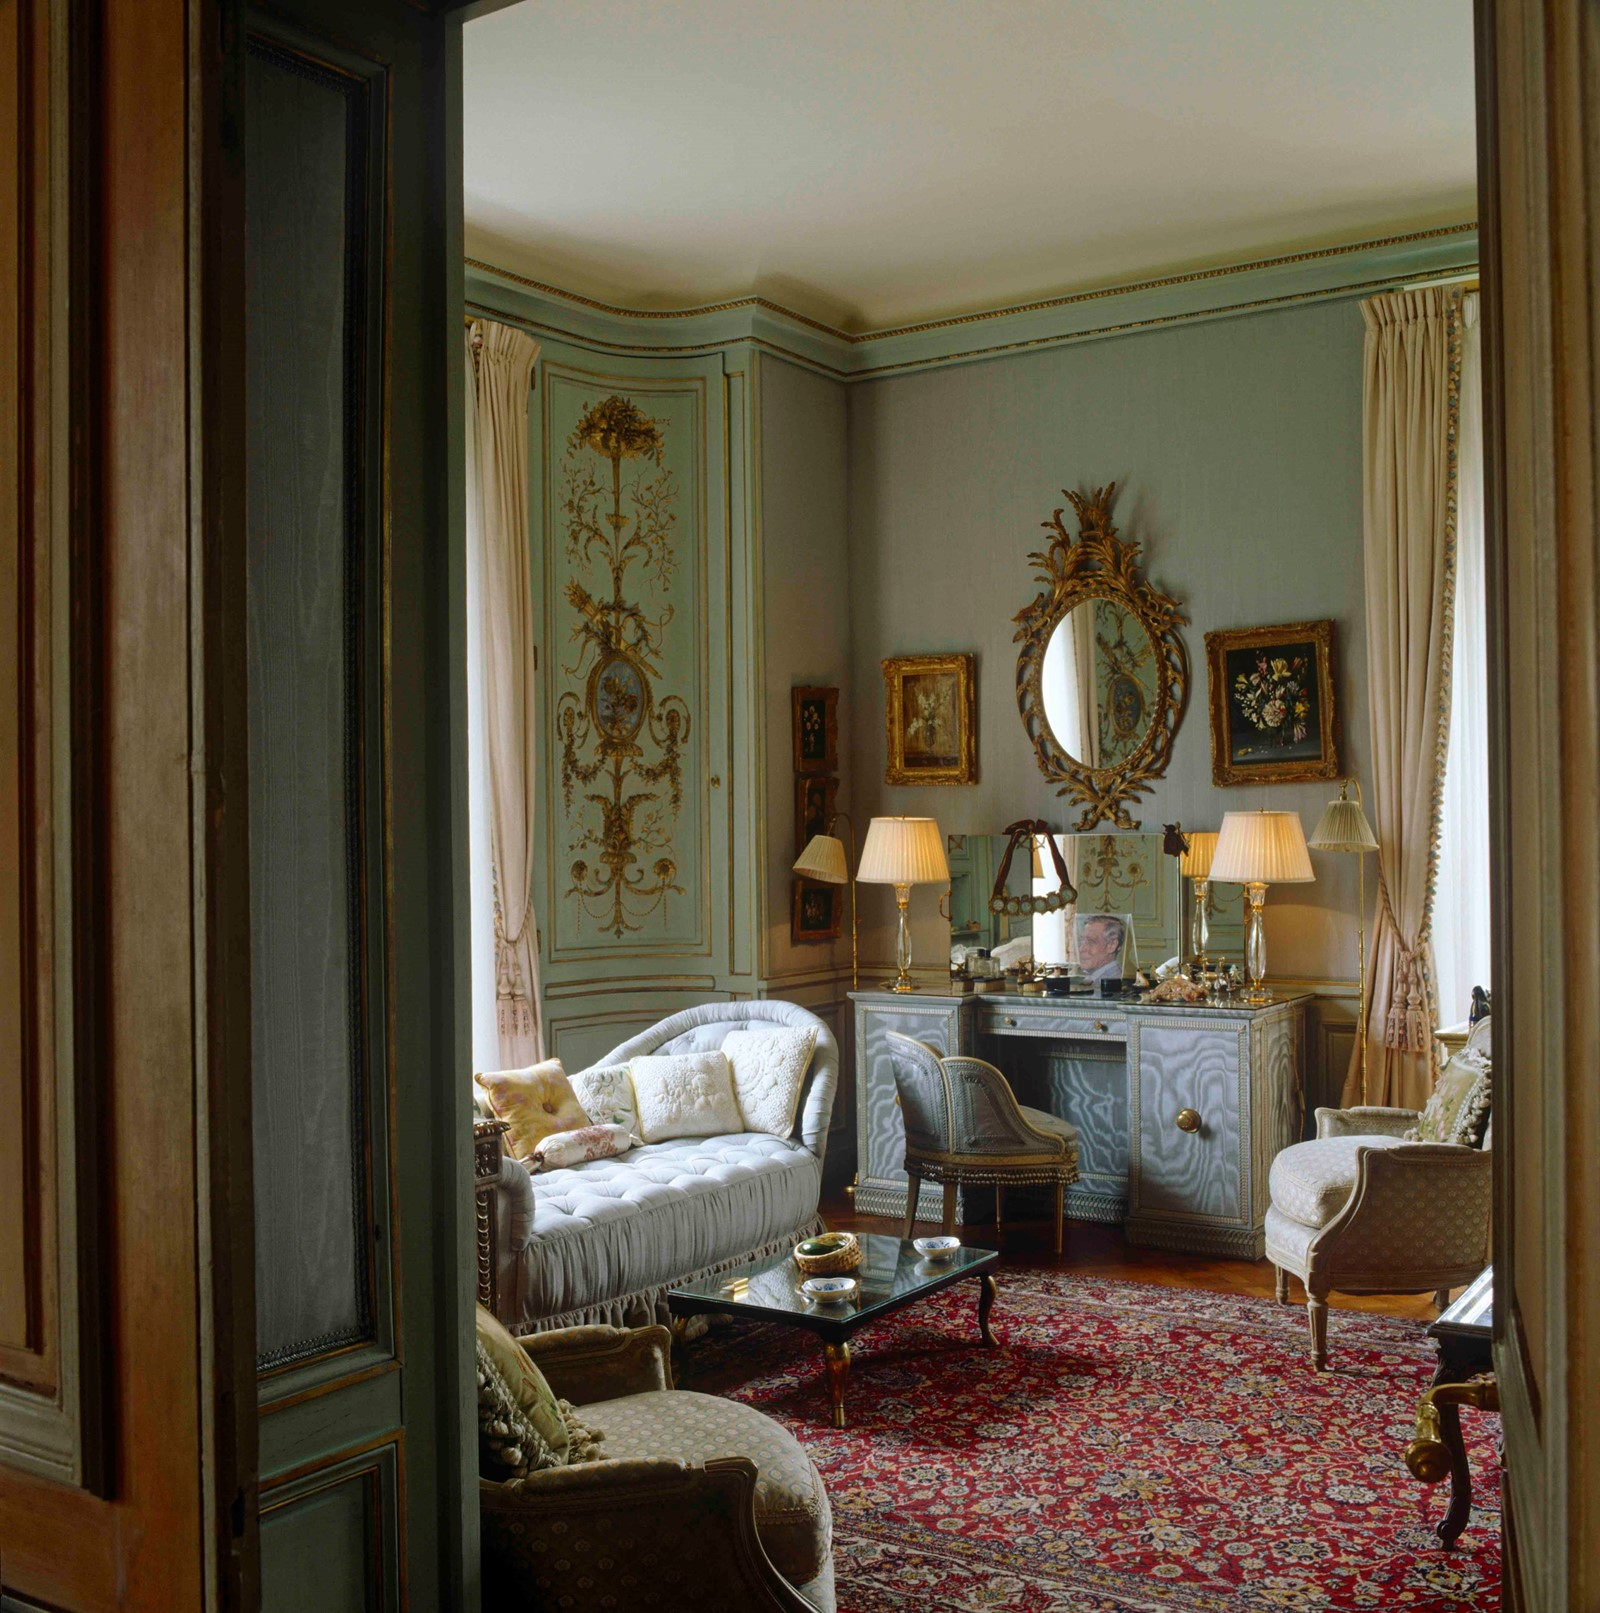 The Duchess of Windsor's bedroom Wallis Simpson